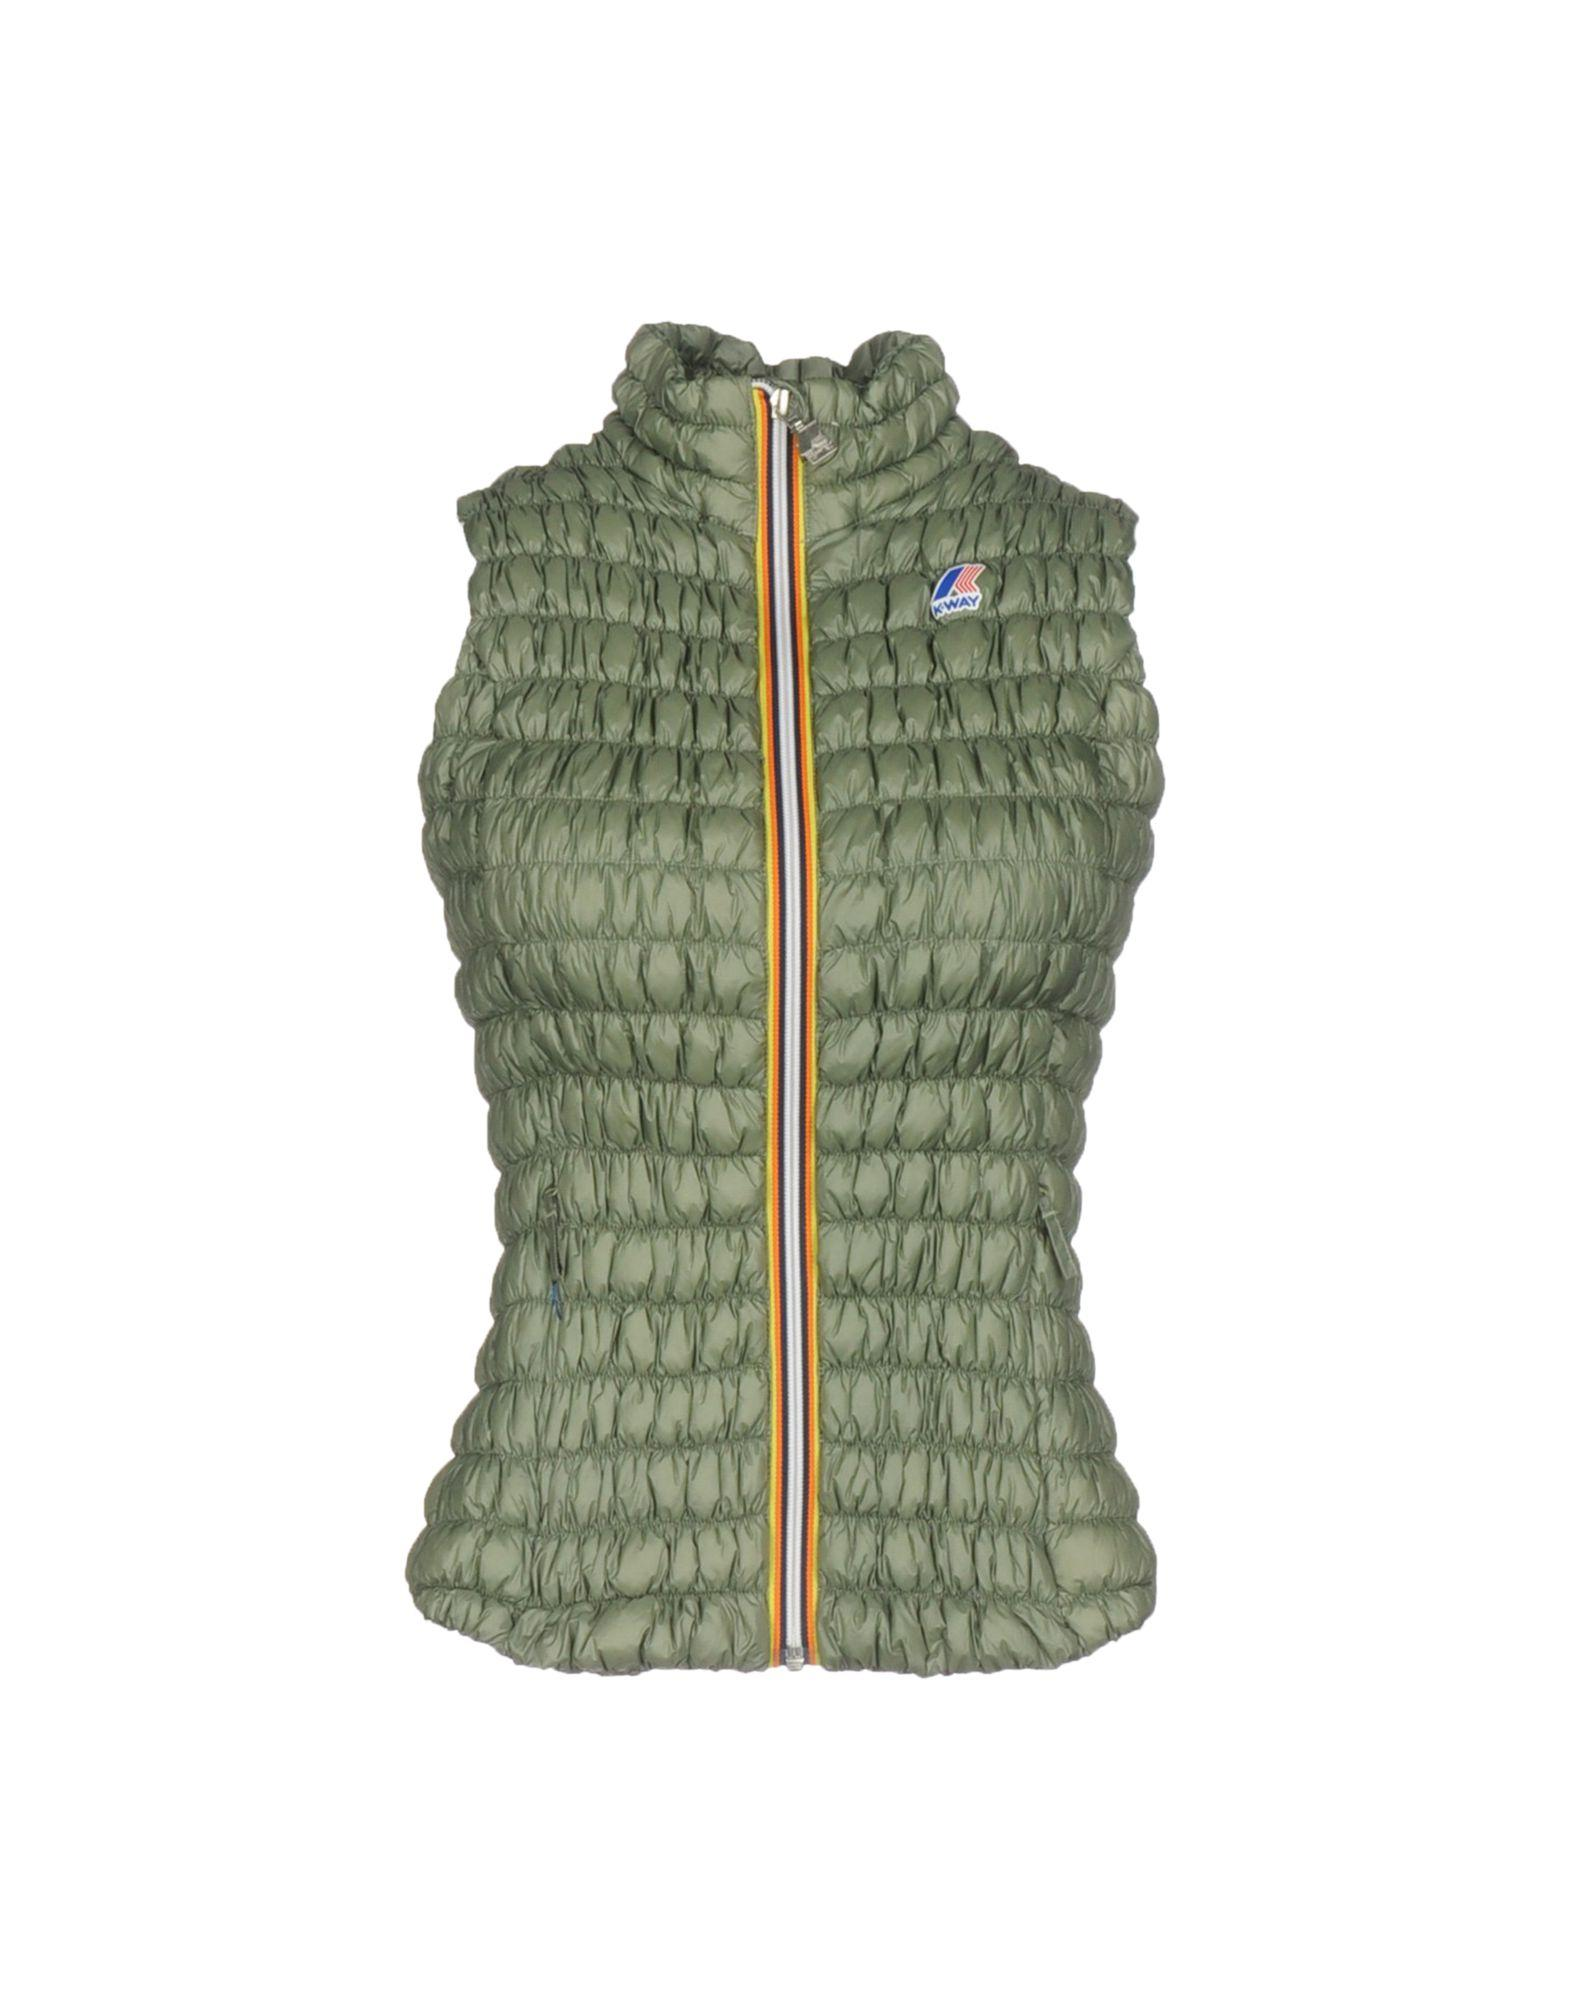 K-way Down Jackets In Military Green